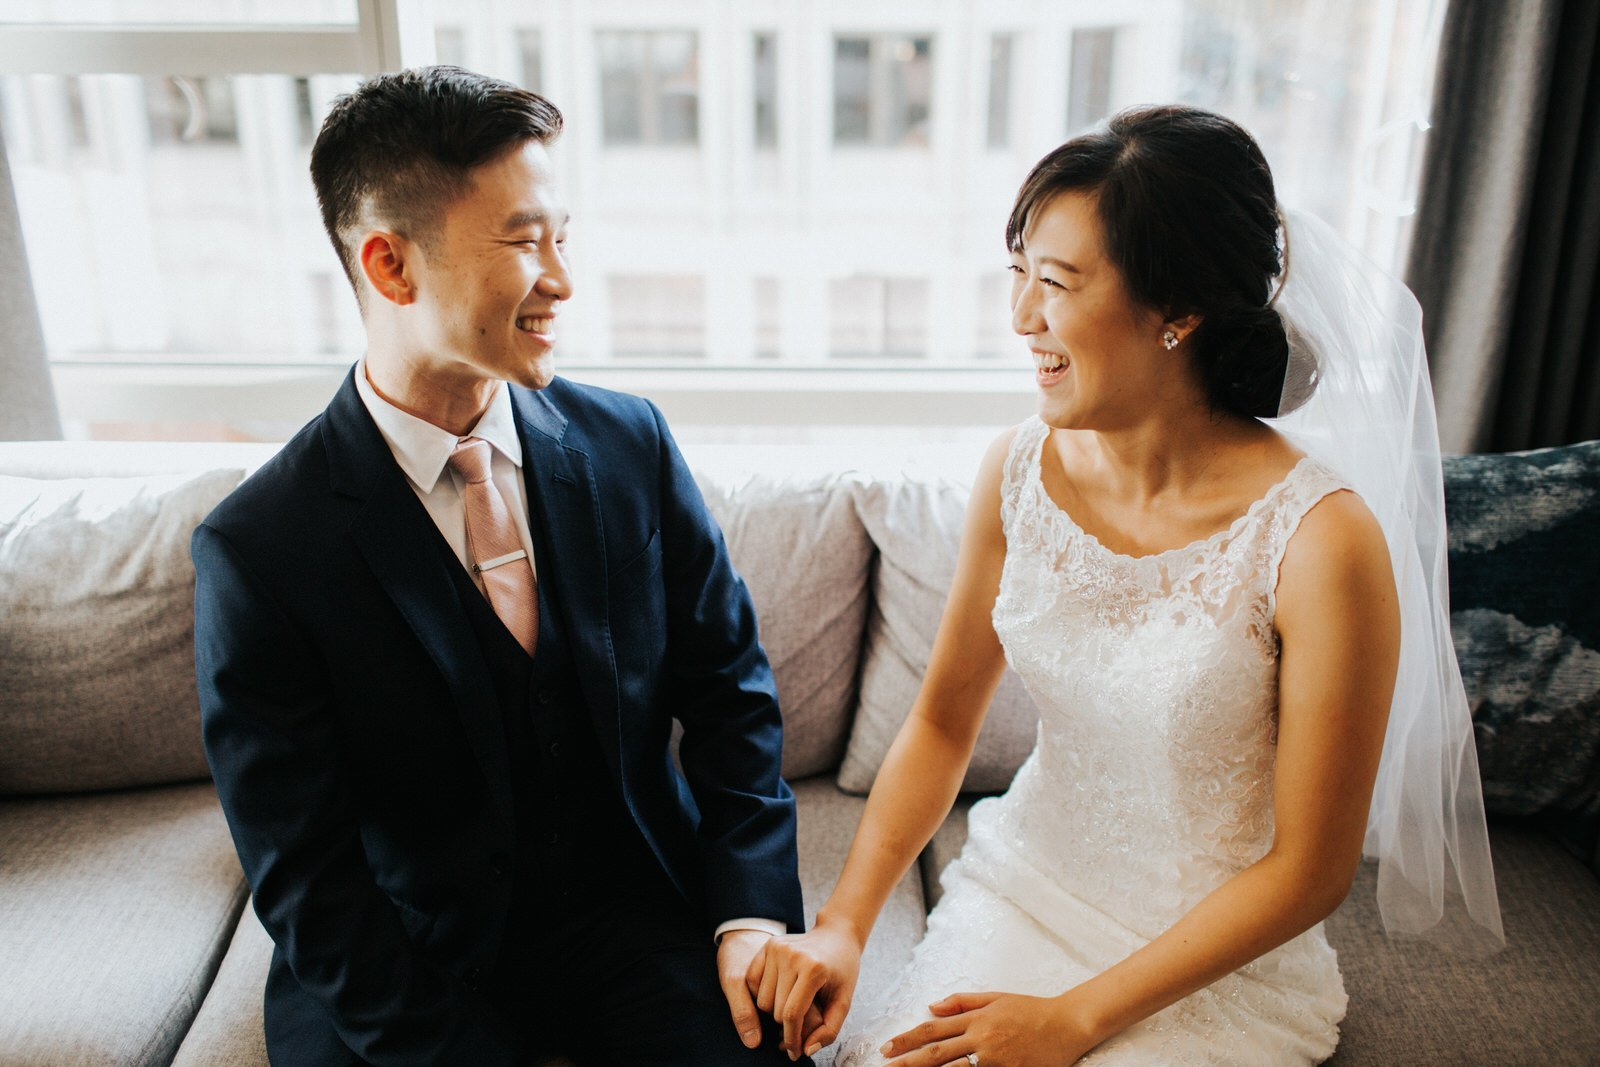 The couple sits on a couch and smiles at each other